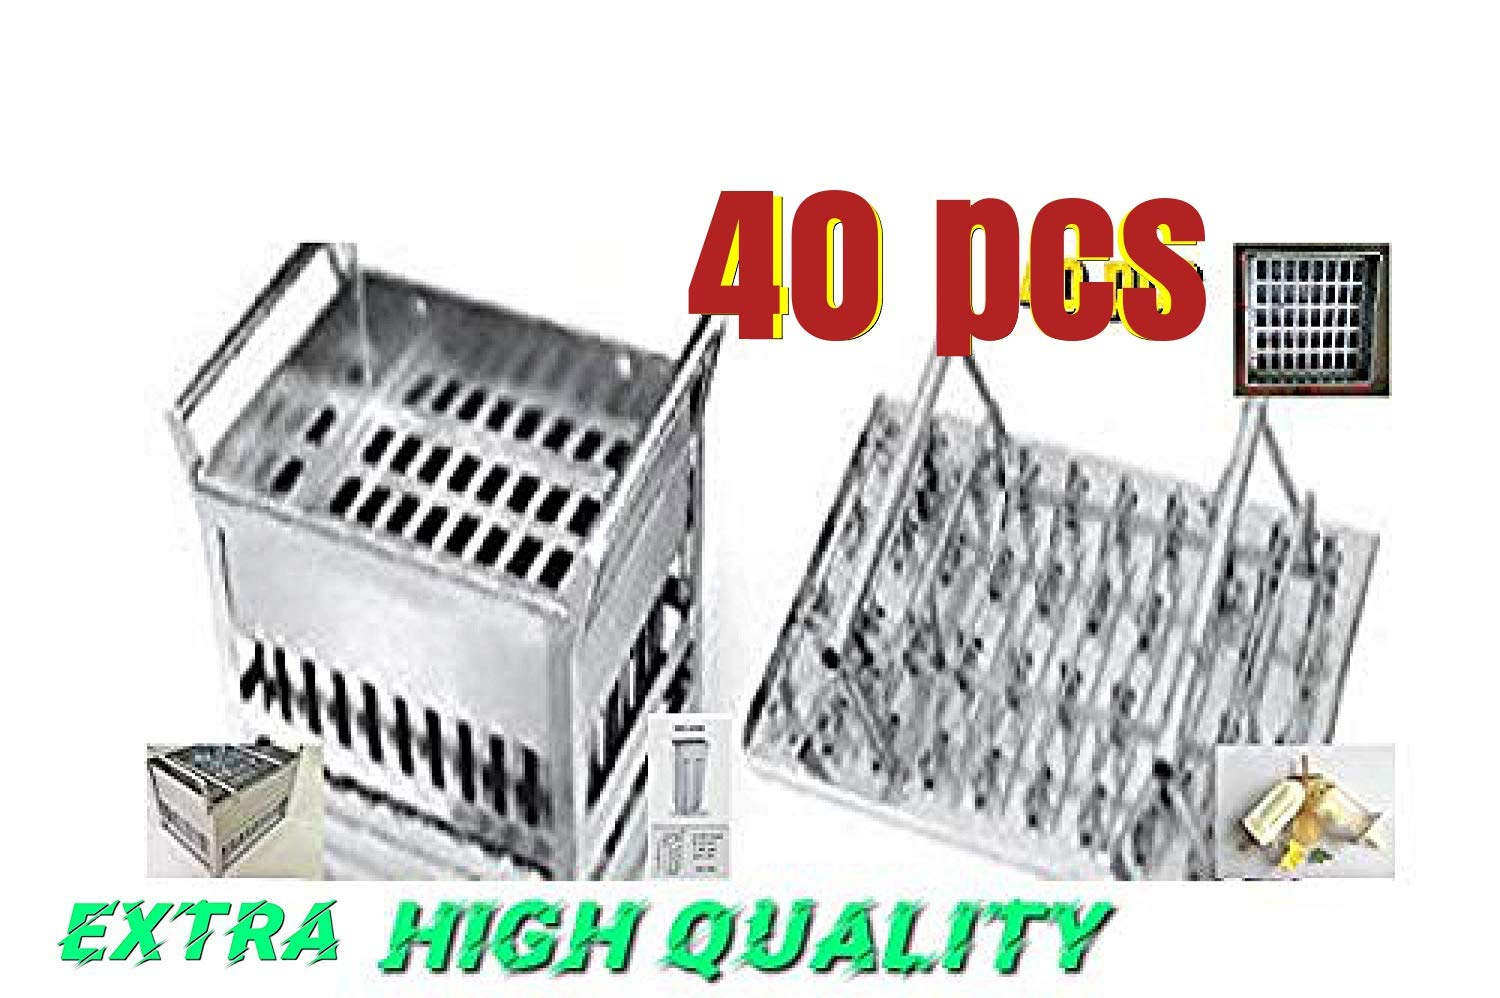 40pcs stainless steel popsicle mold machine -ice pop molds bpa free -ice Cream Mold pop molds popsicle molds stainless steel-ice pop maker molds Ice Lolly Ice Cream Pops(40 popsicle mold basket 80ml)